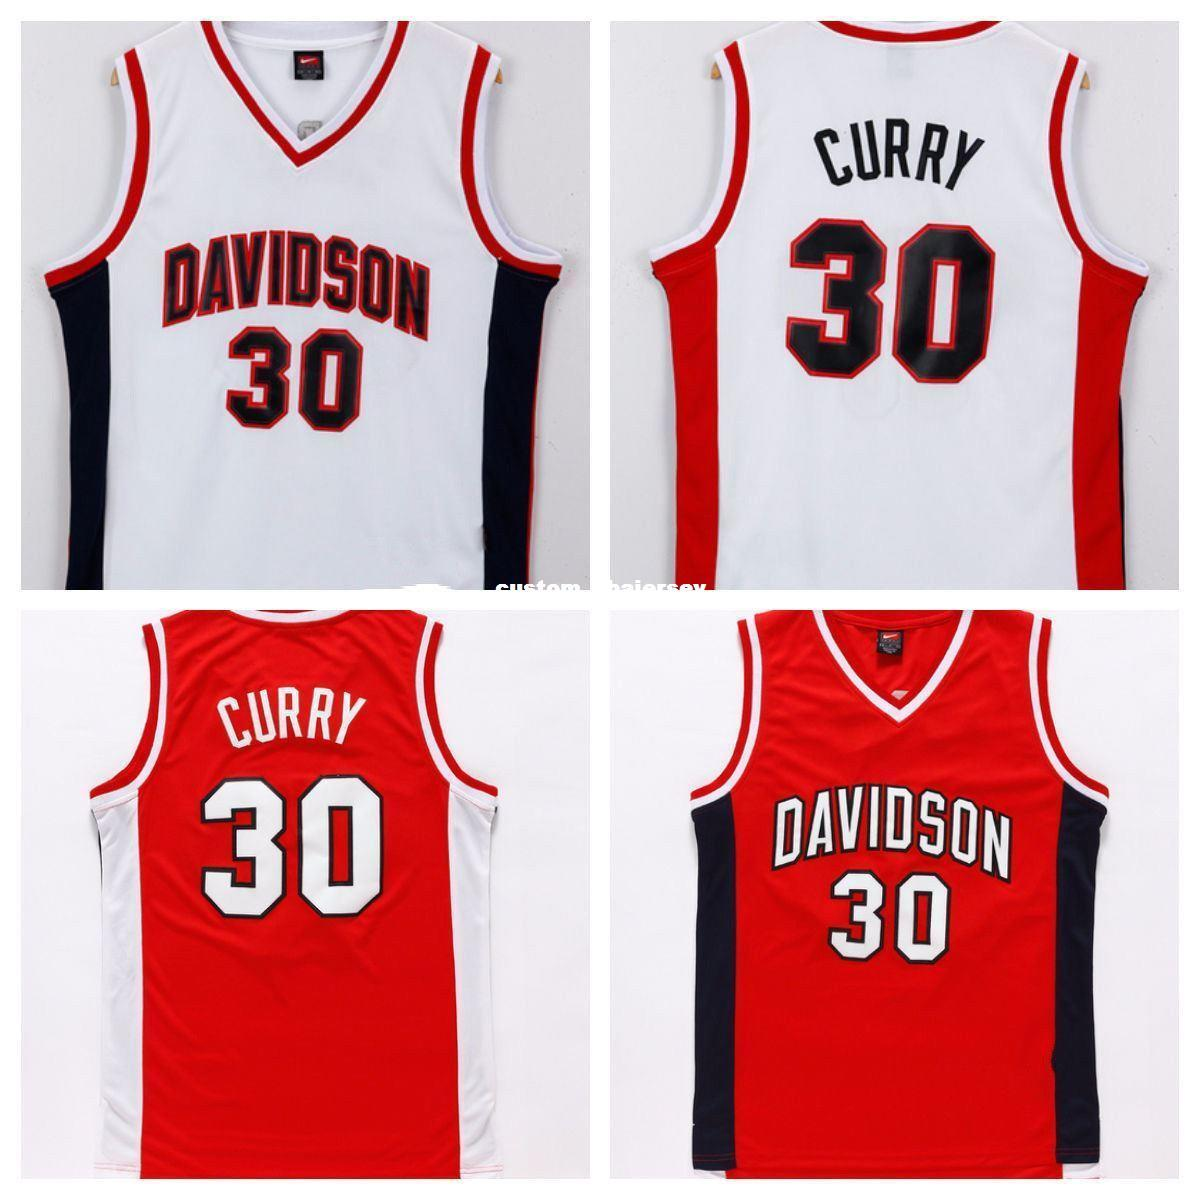 free shipping 2ca10 7657c stephen curry davidson jersey cheap